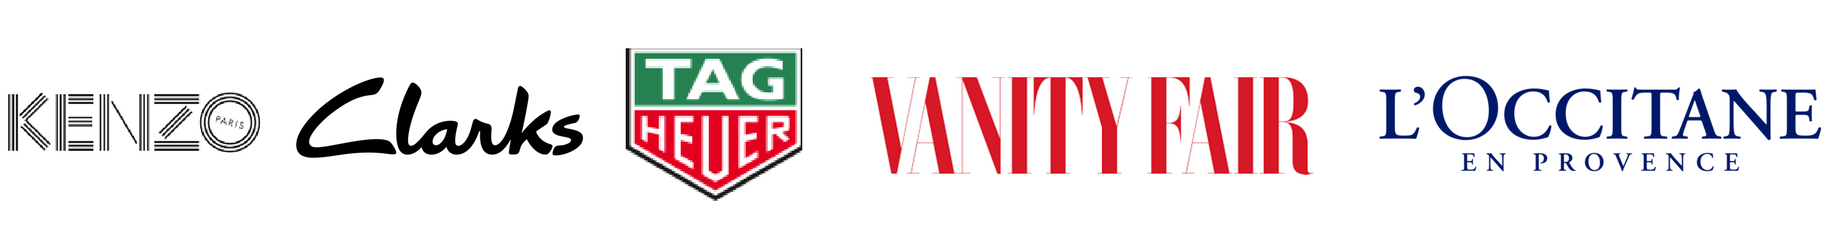 [Logos of Kenzo, Clarks, tag heuer, vanity fair, l occitane).png